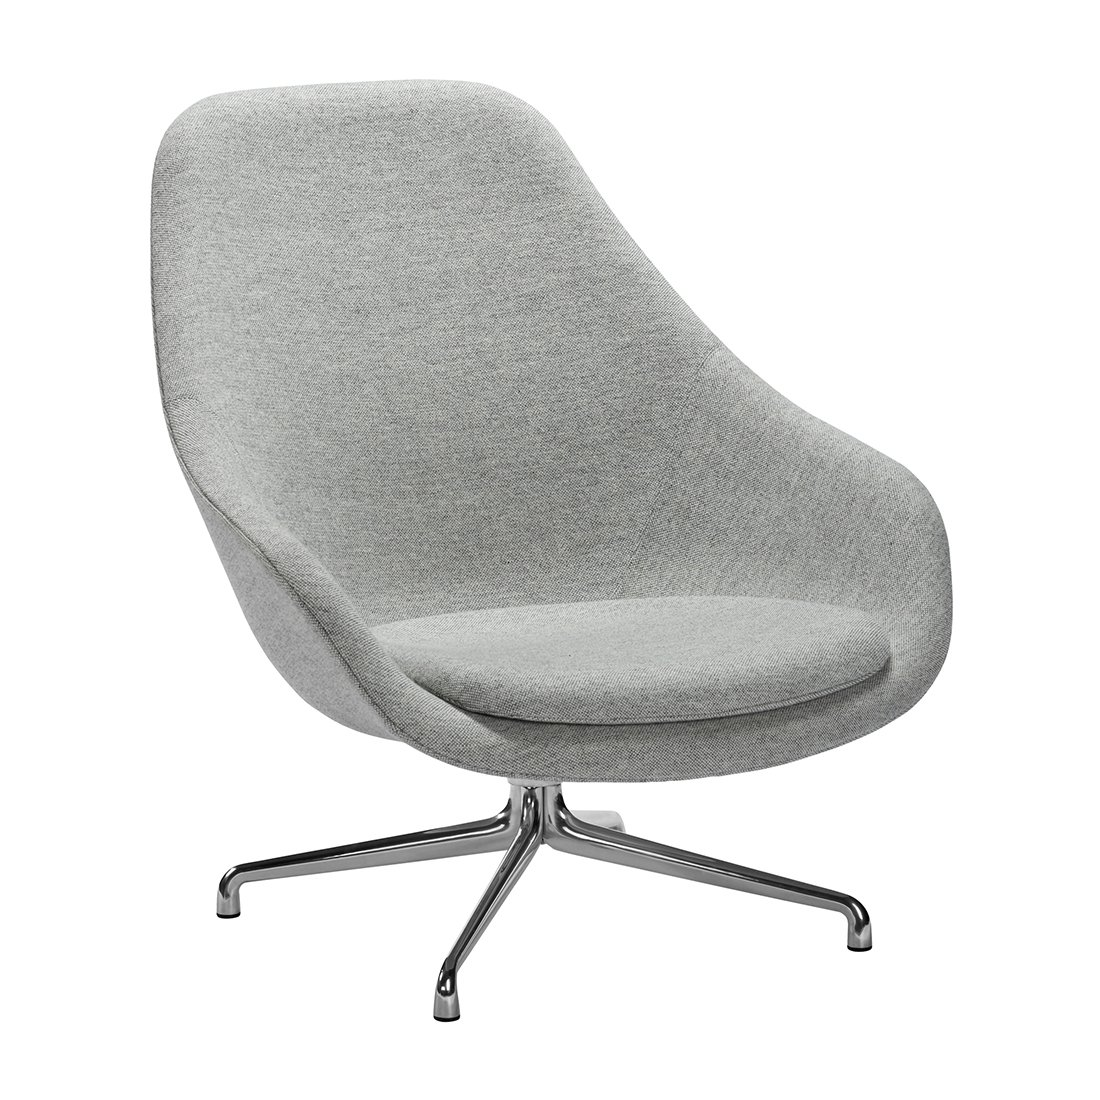 About a Lounge Chair High AAL91 Fauteuil Hay